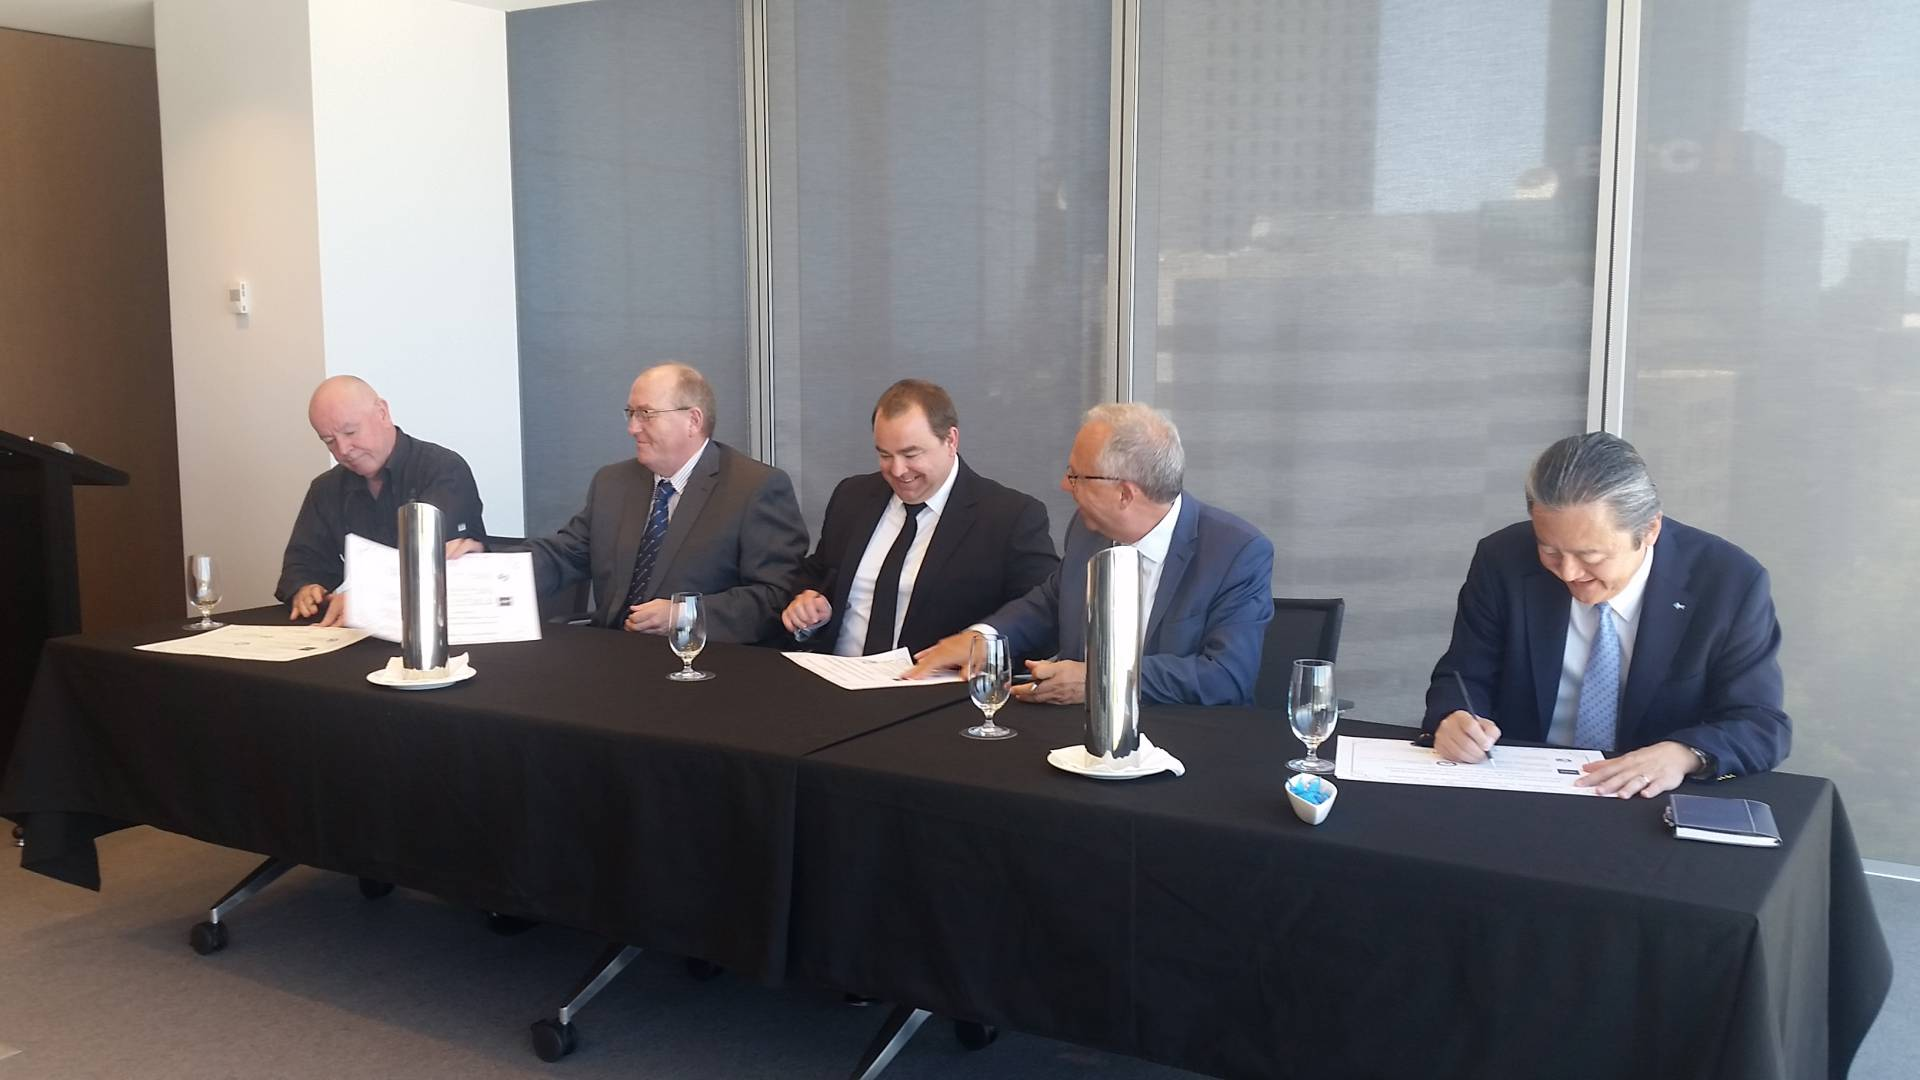 INPEX signing ceremony Perth WA 24th January 2017